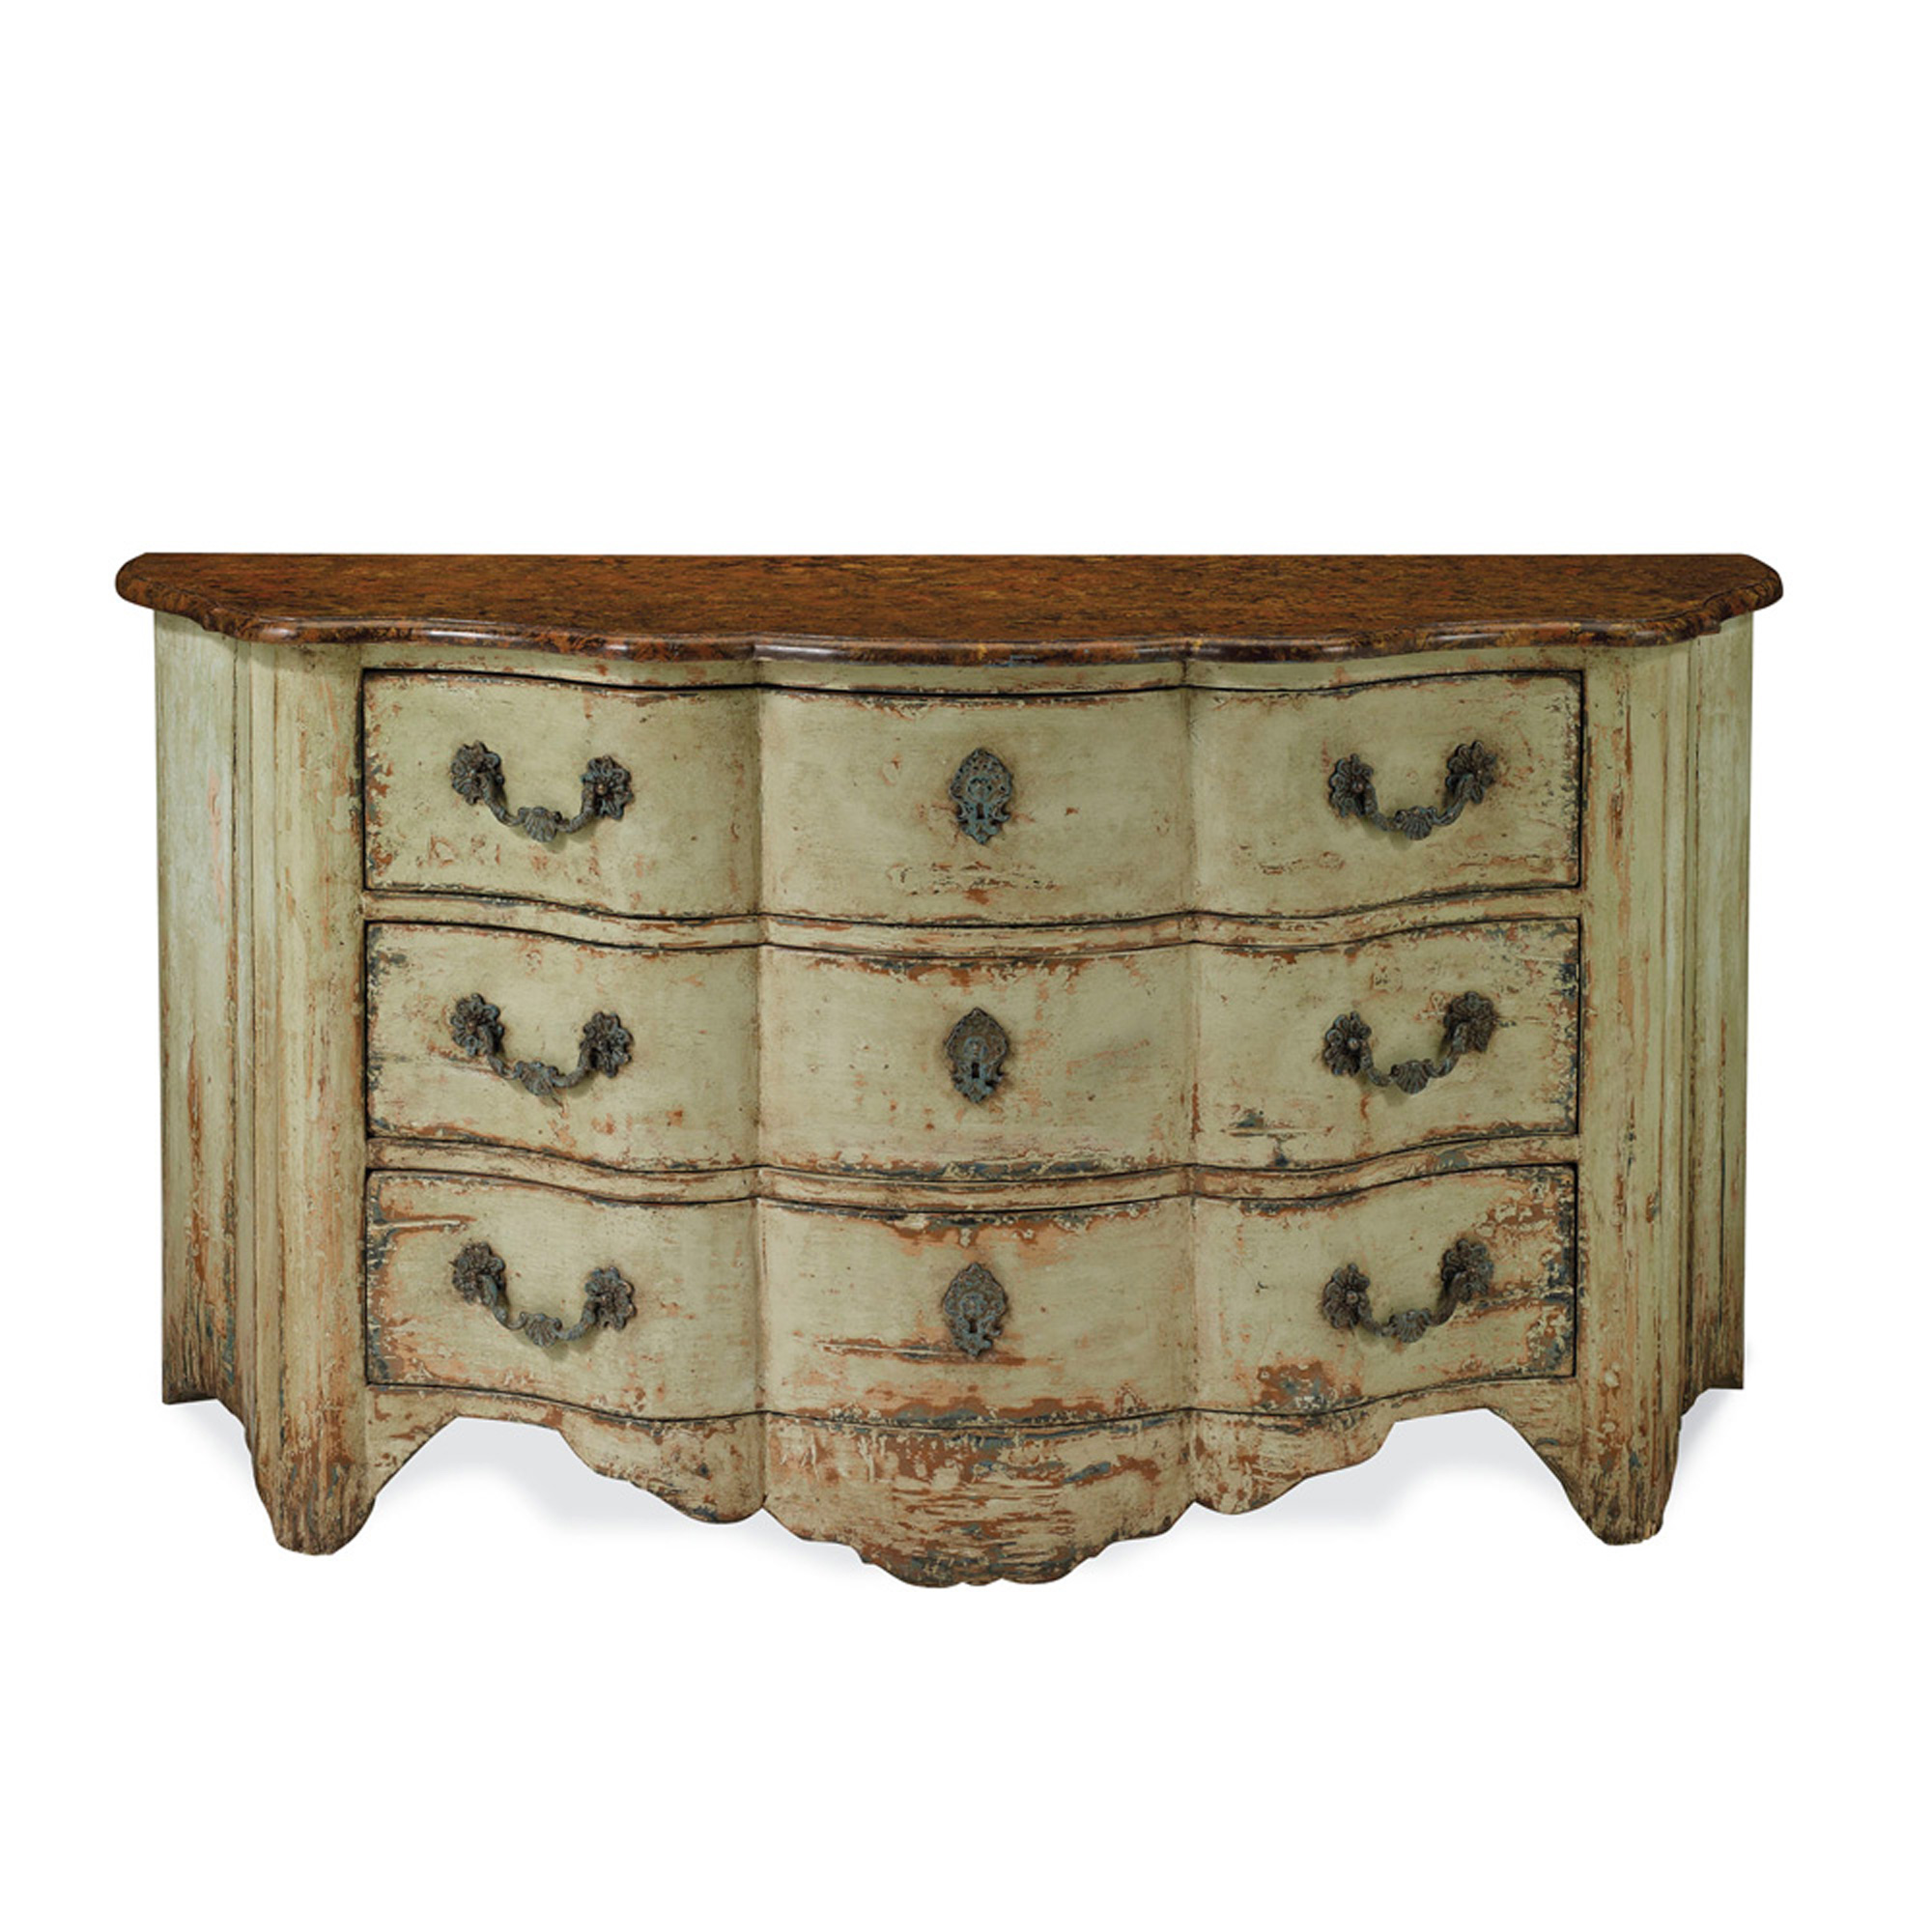 Provinciale commode beth claybourn interiors - Interiors commode ...